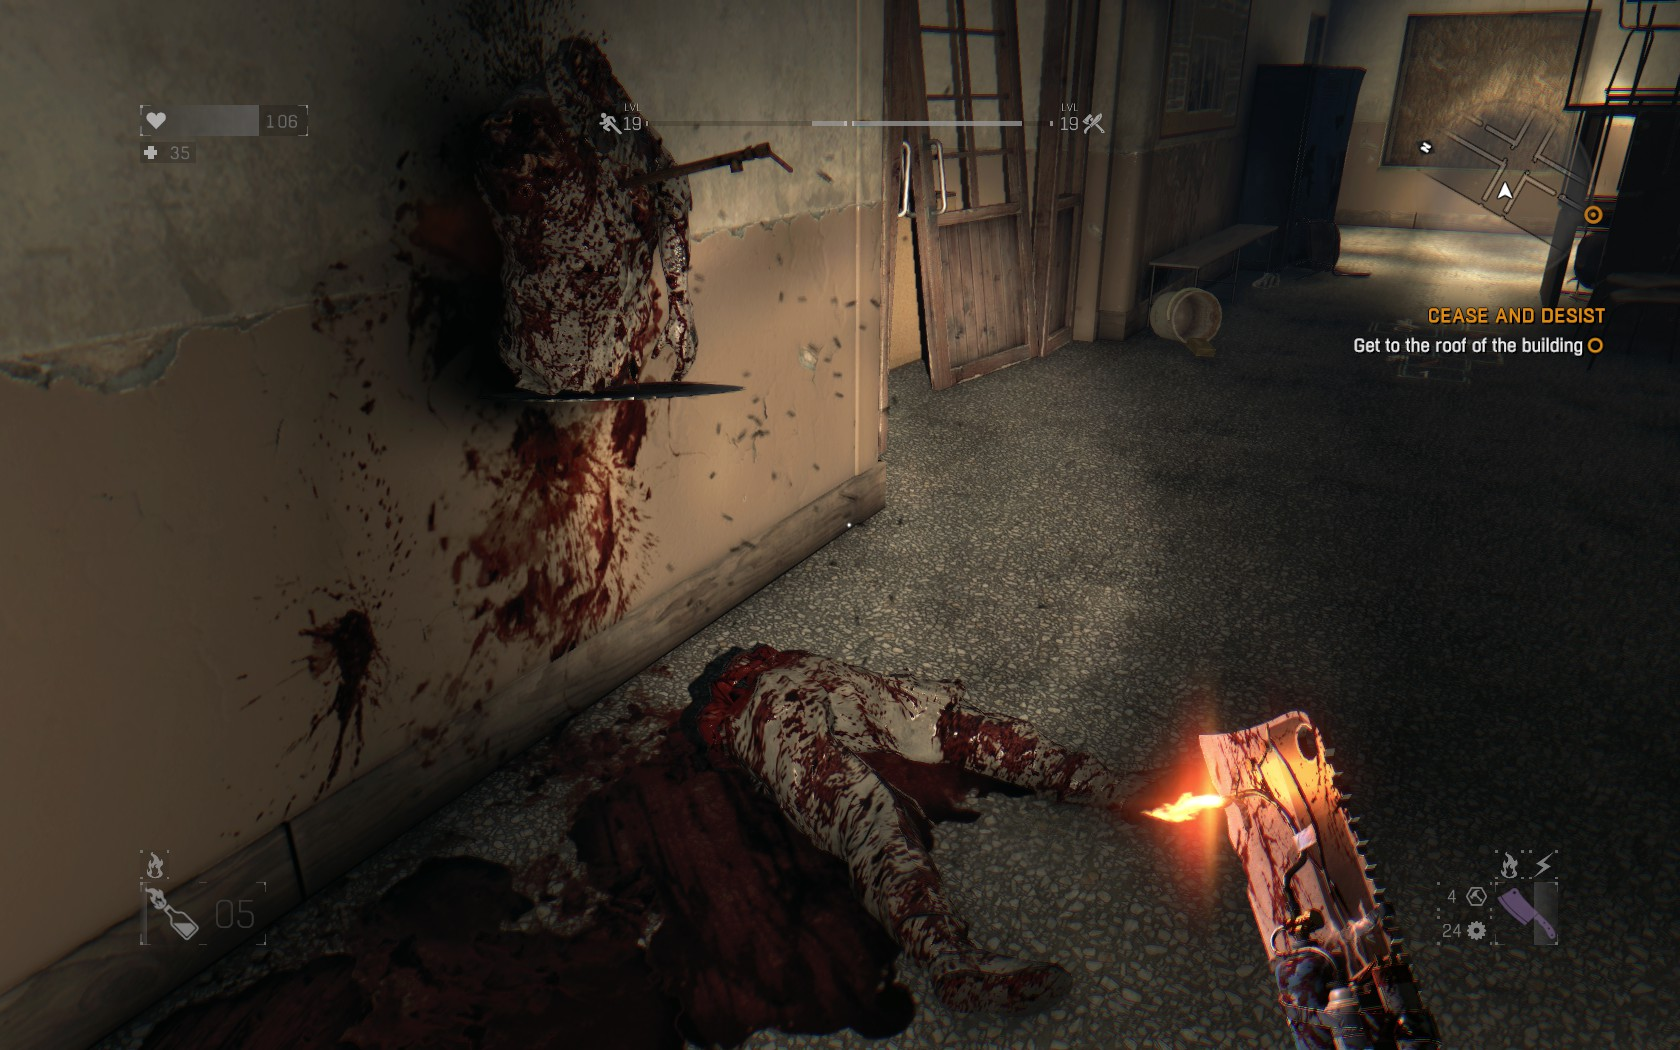 There are lots of Easter eggs in Dying Light such as this reference to Ravenhome in Half Life 2, see the video I've linked at the end for more.